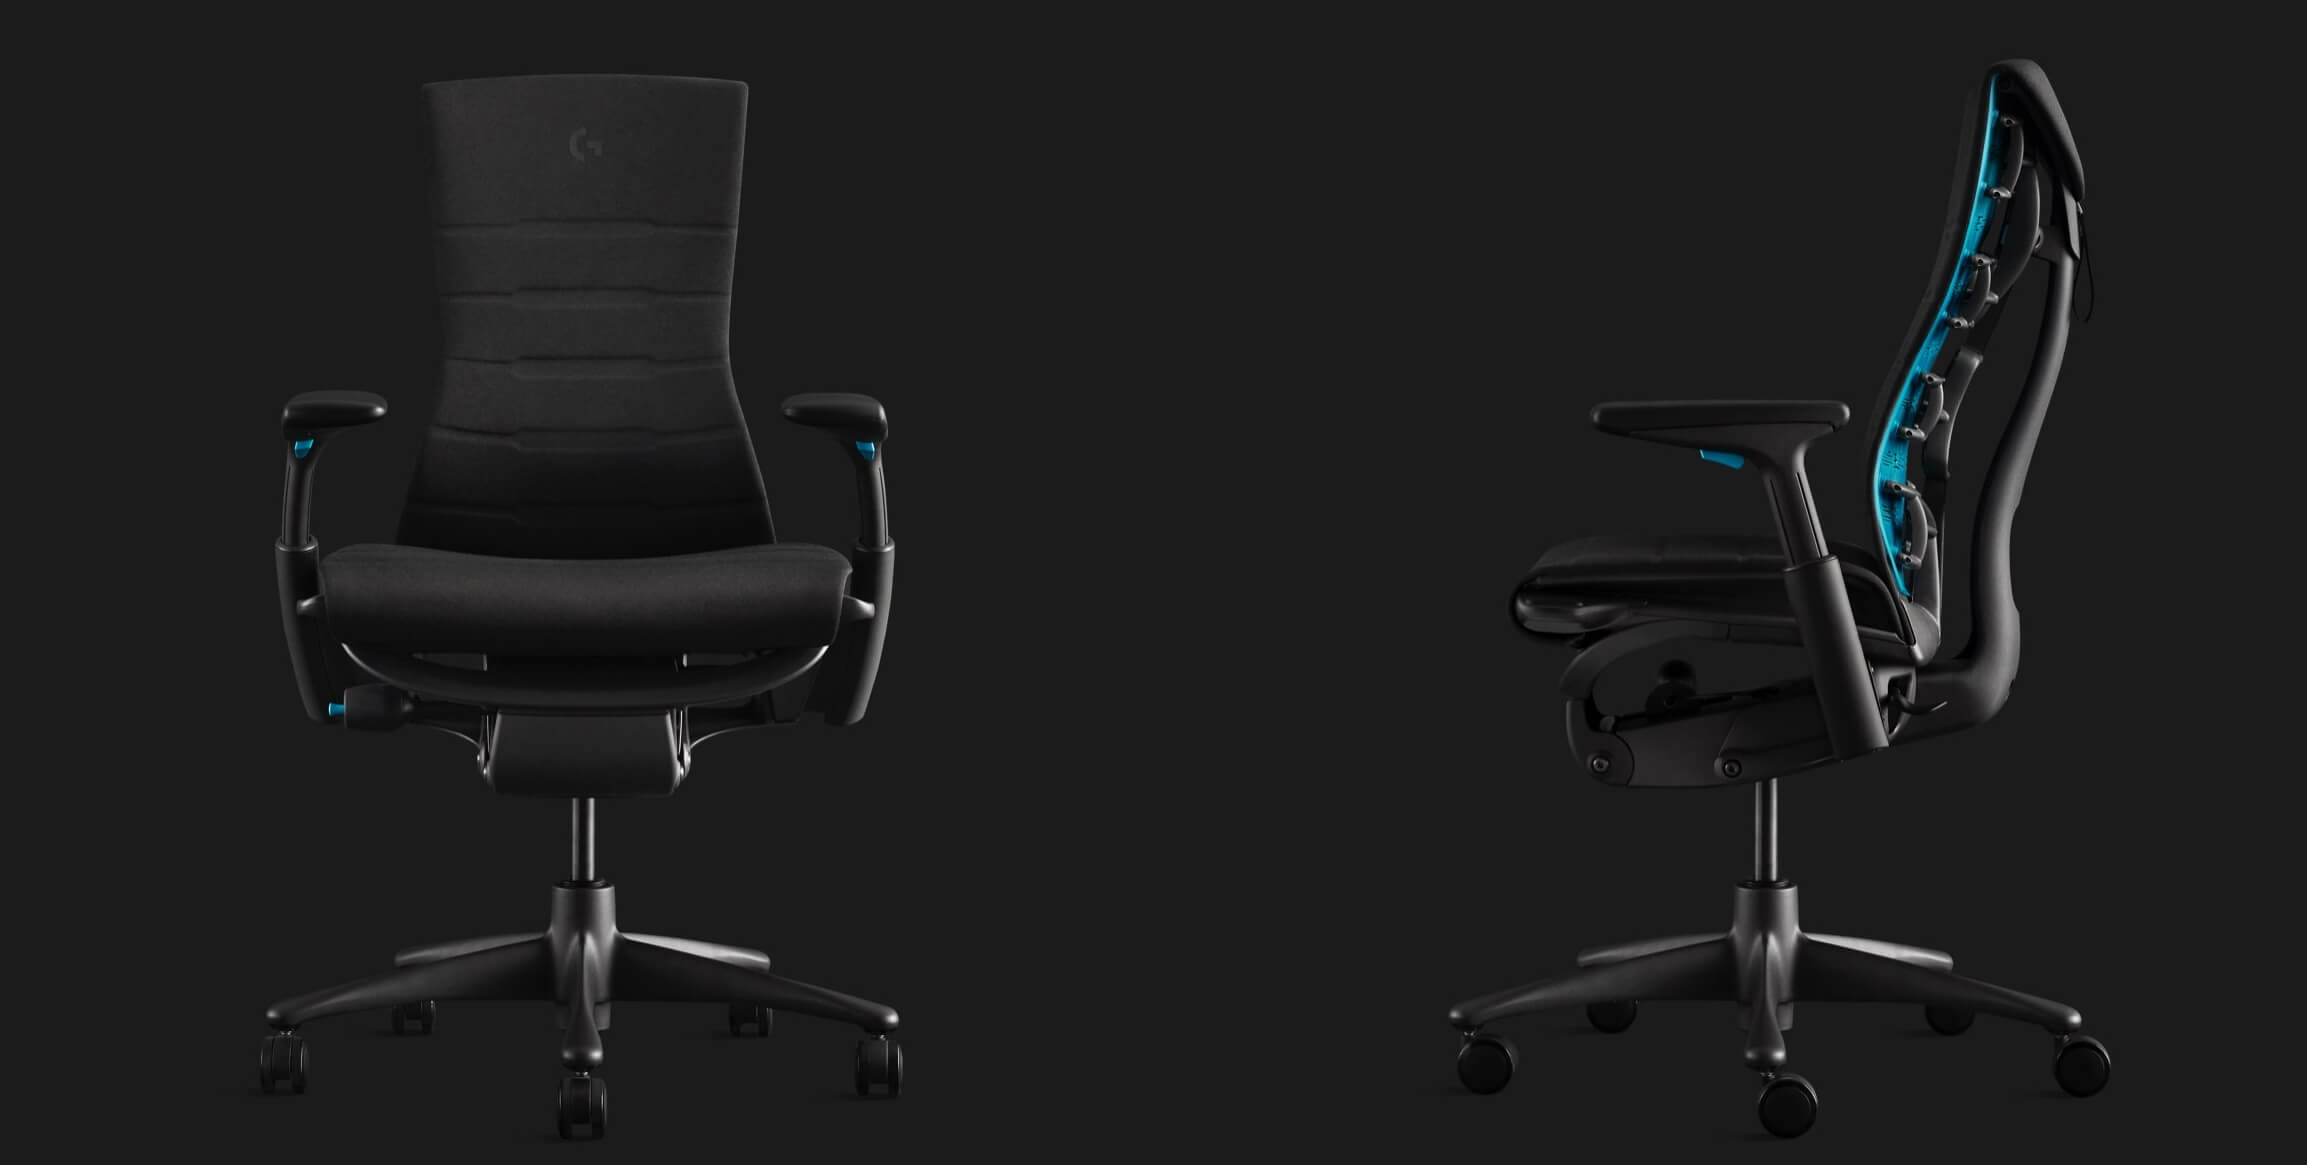 Herman Miller and Logitech launch $1,500 gaming chair